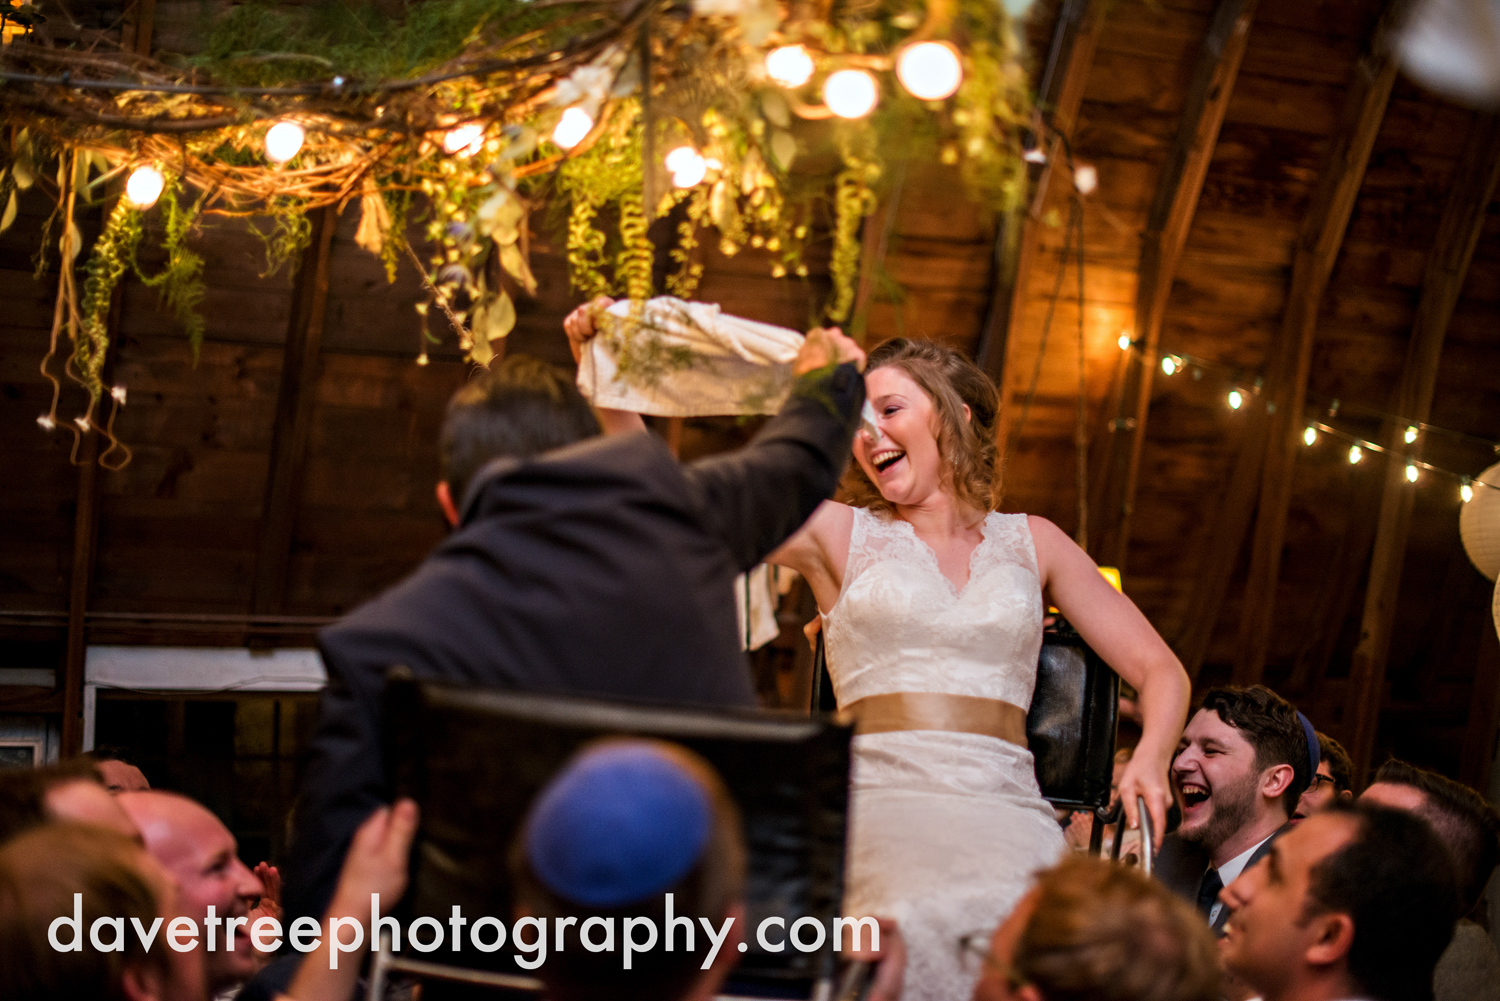 benton_harbor_wedding_photographer_blue_dress_barn_49.jpg